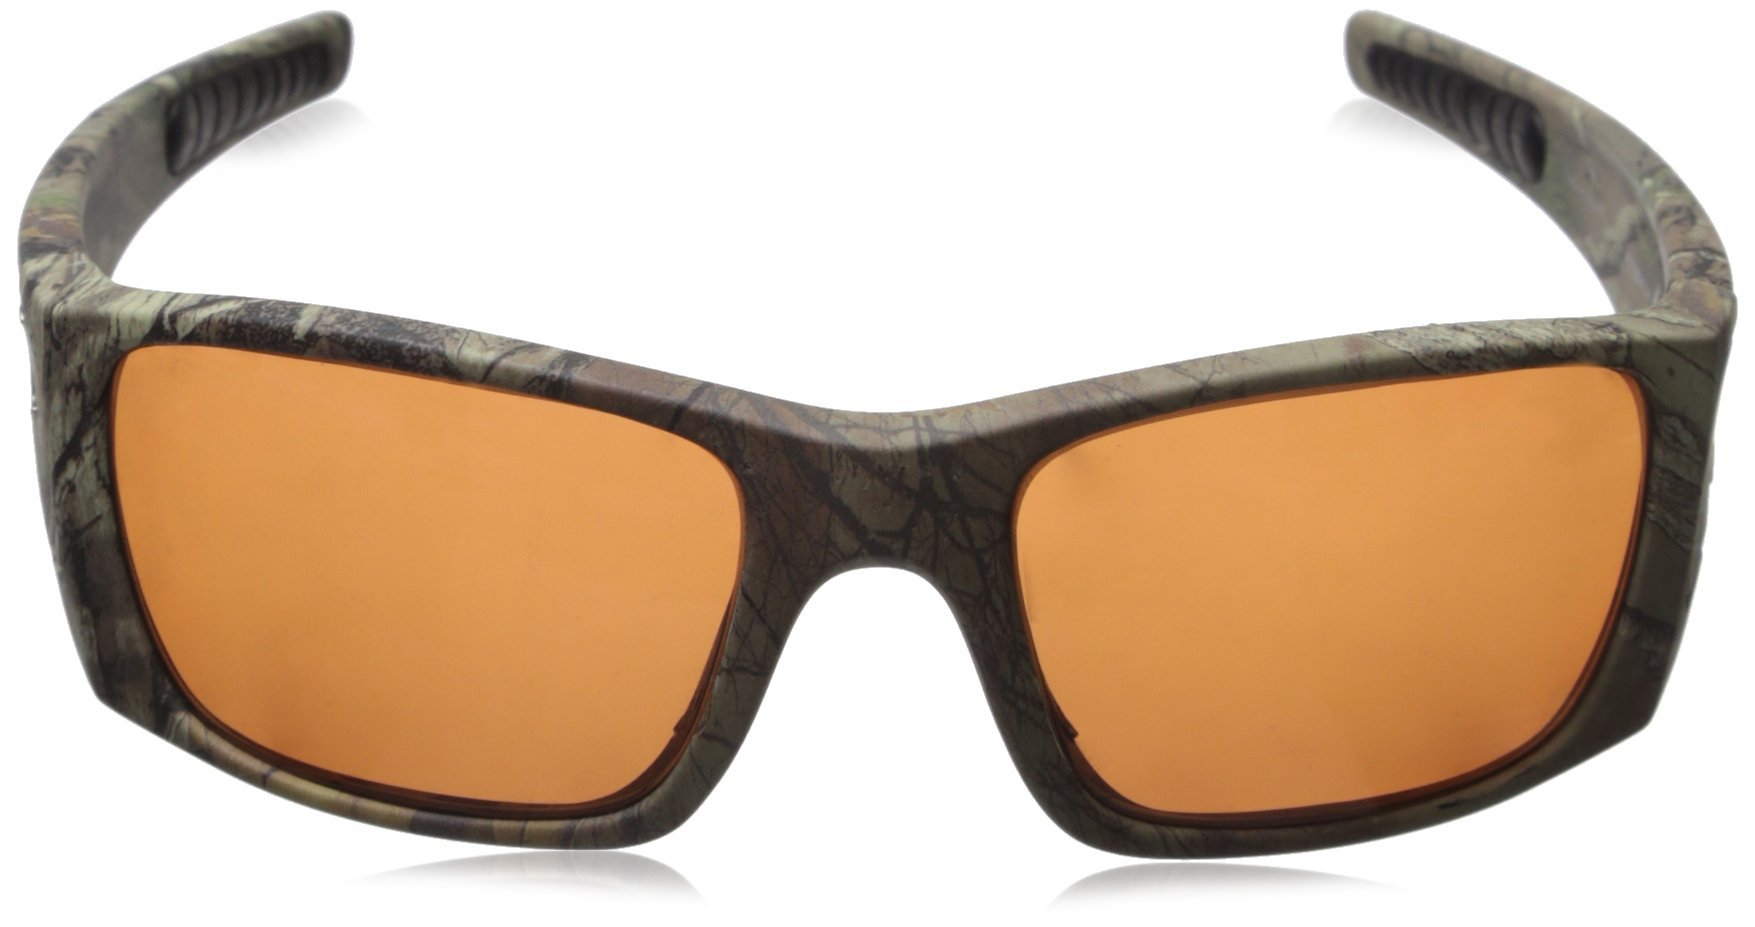 Vicious Vision Vengeance Pro Series Copper Lens Sunglasses, Realtree Xtra by Vicious Vision (Image #2)